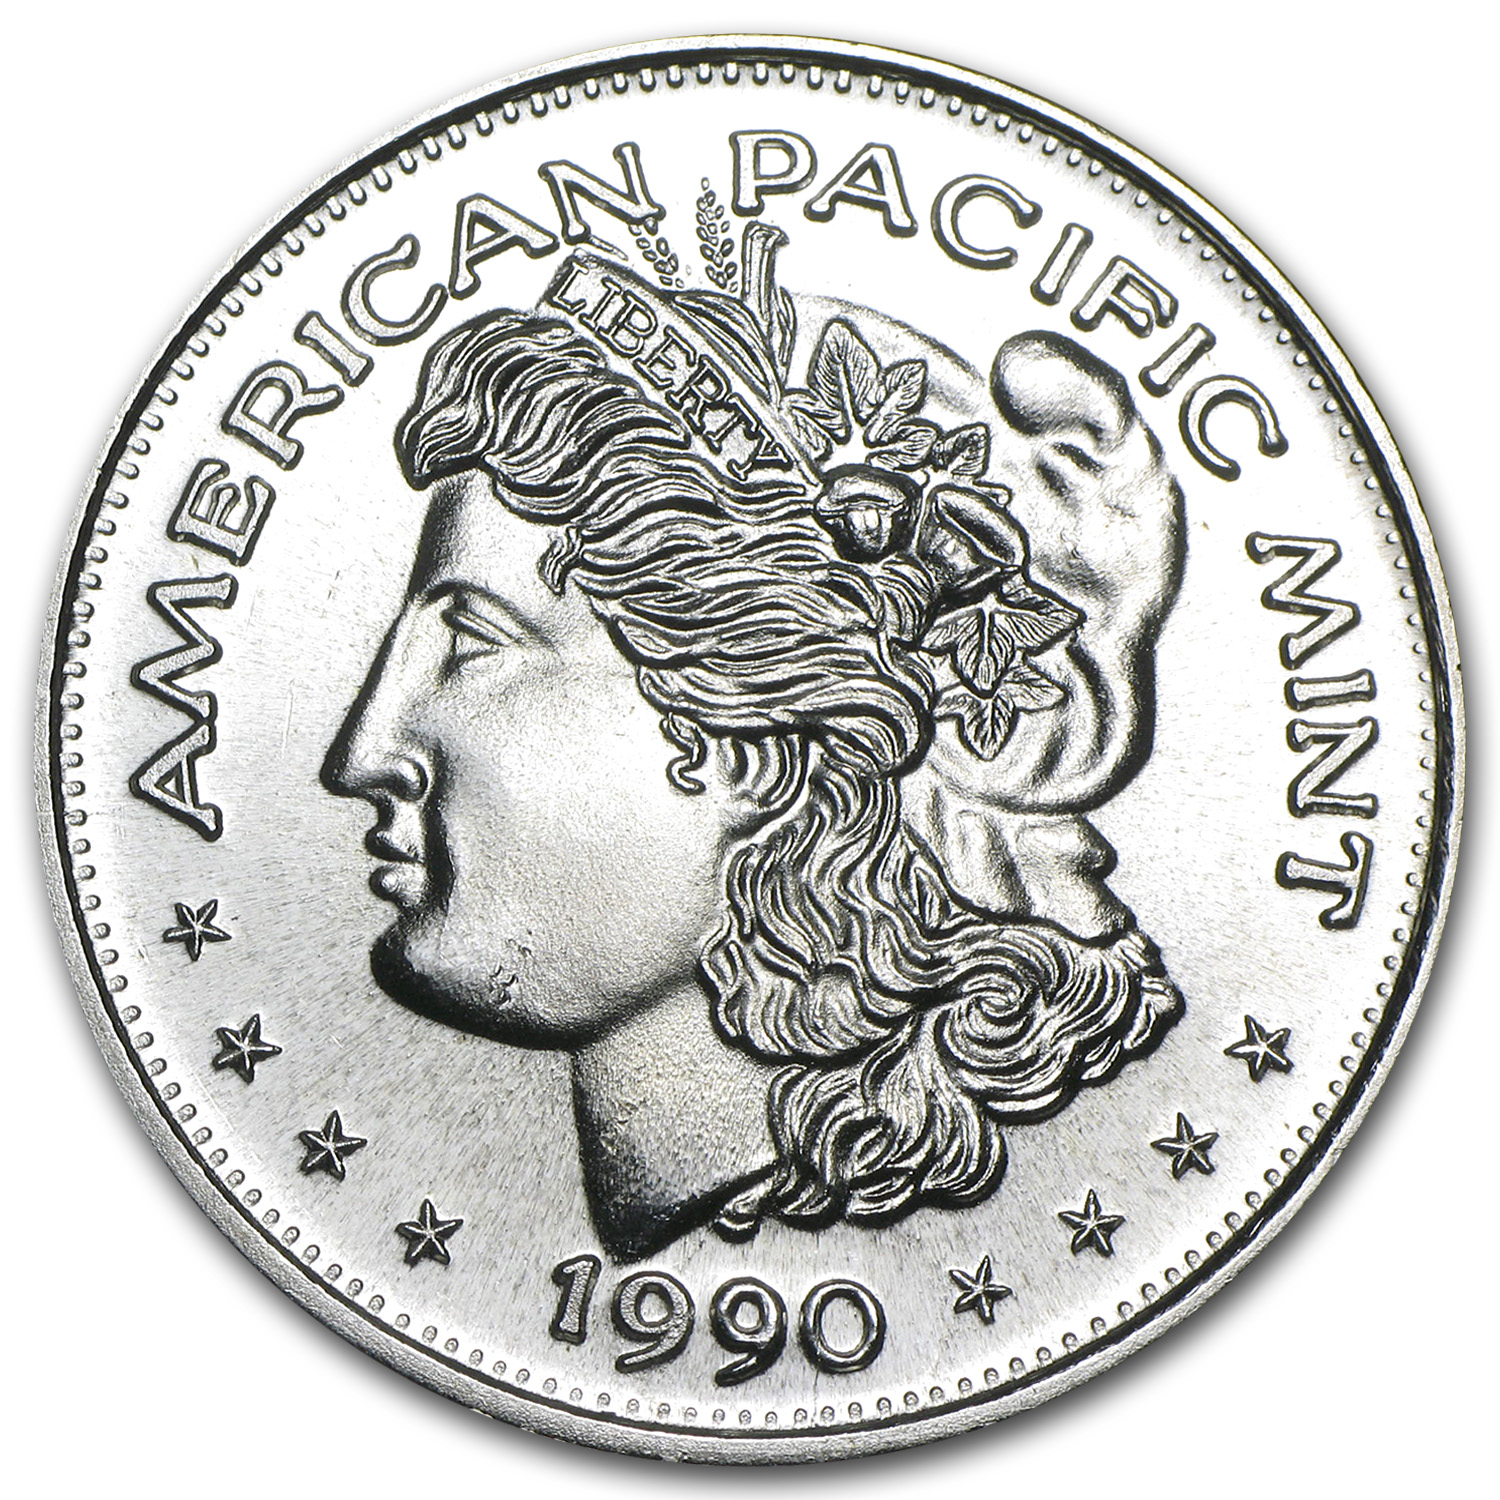 1 oz Silver Round - American Pacific Mint (Morgan)